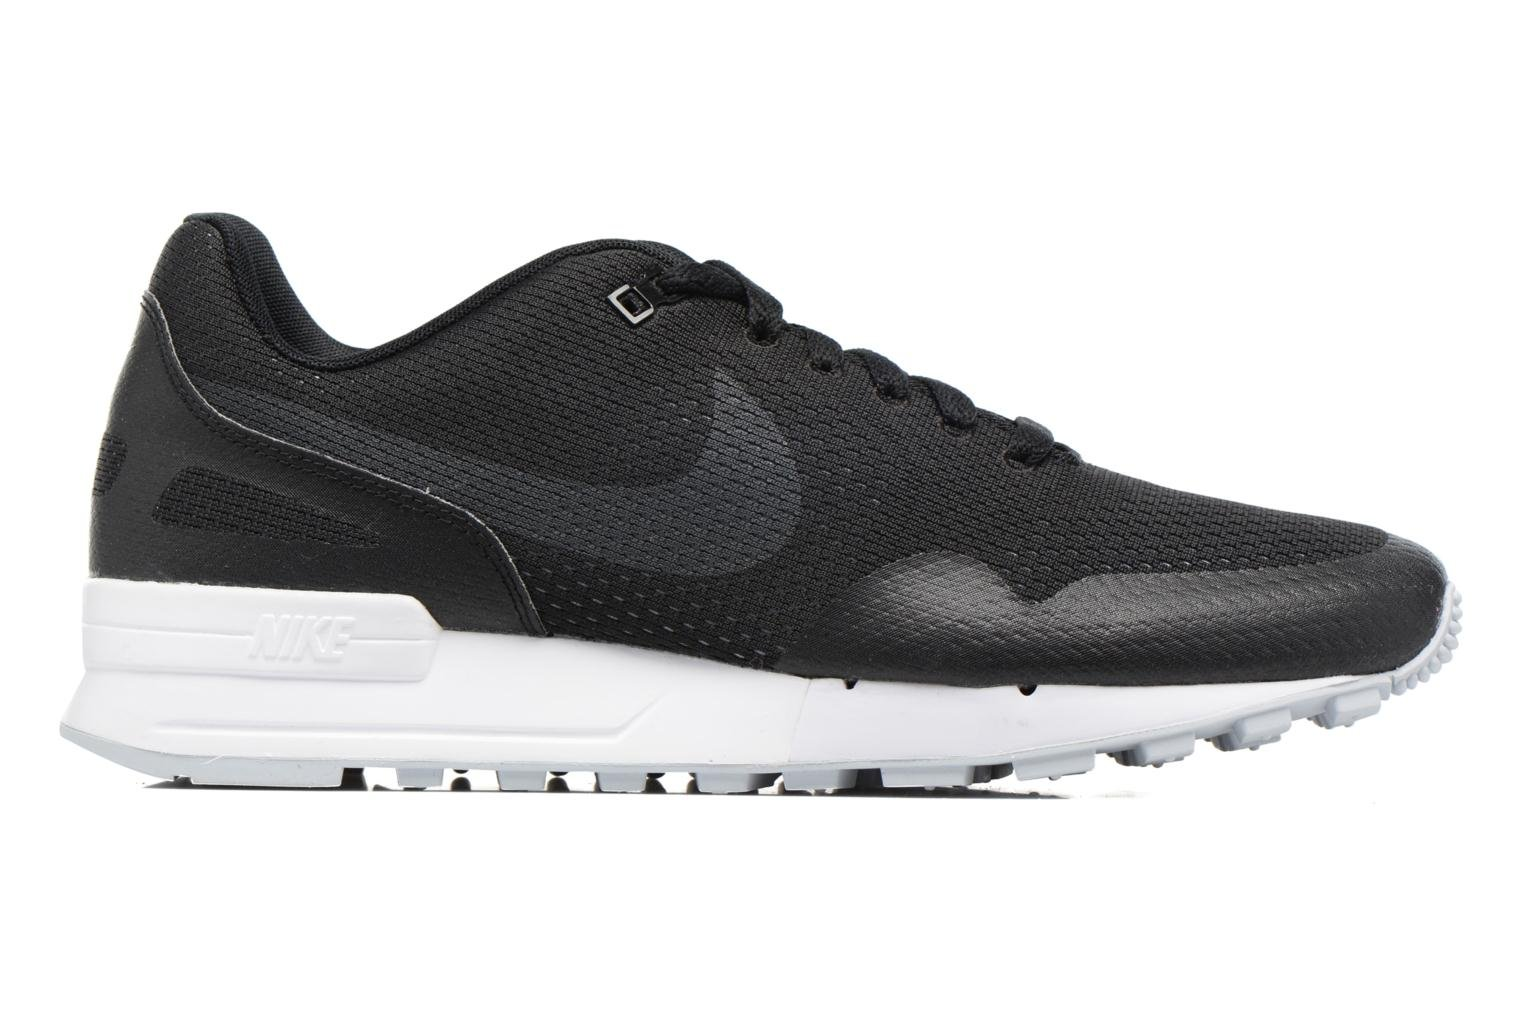 Nike Air Pegasus '89 Egd Black/Anthracite-Wolf Grey-White